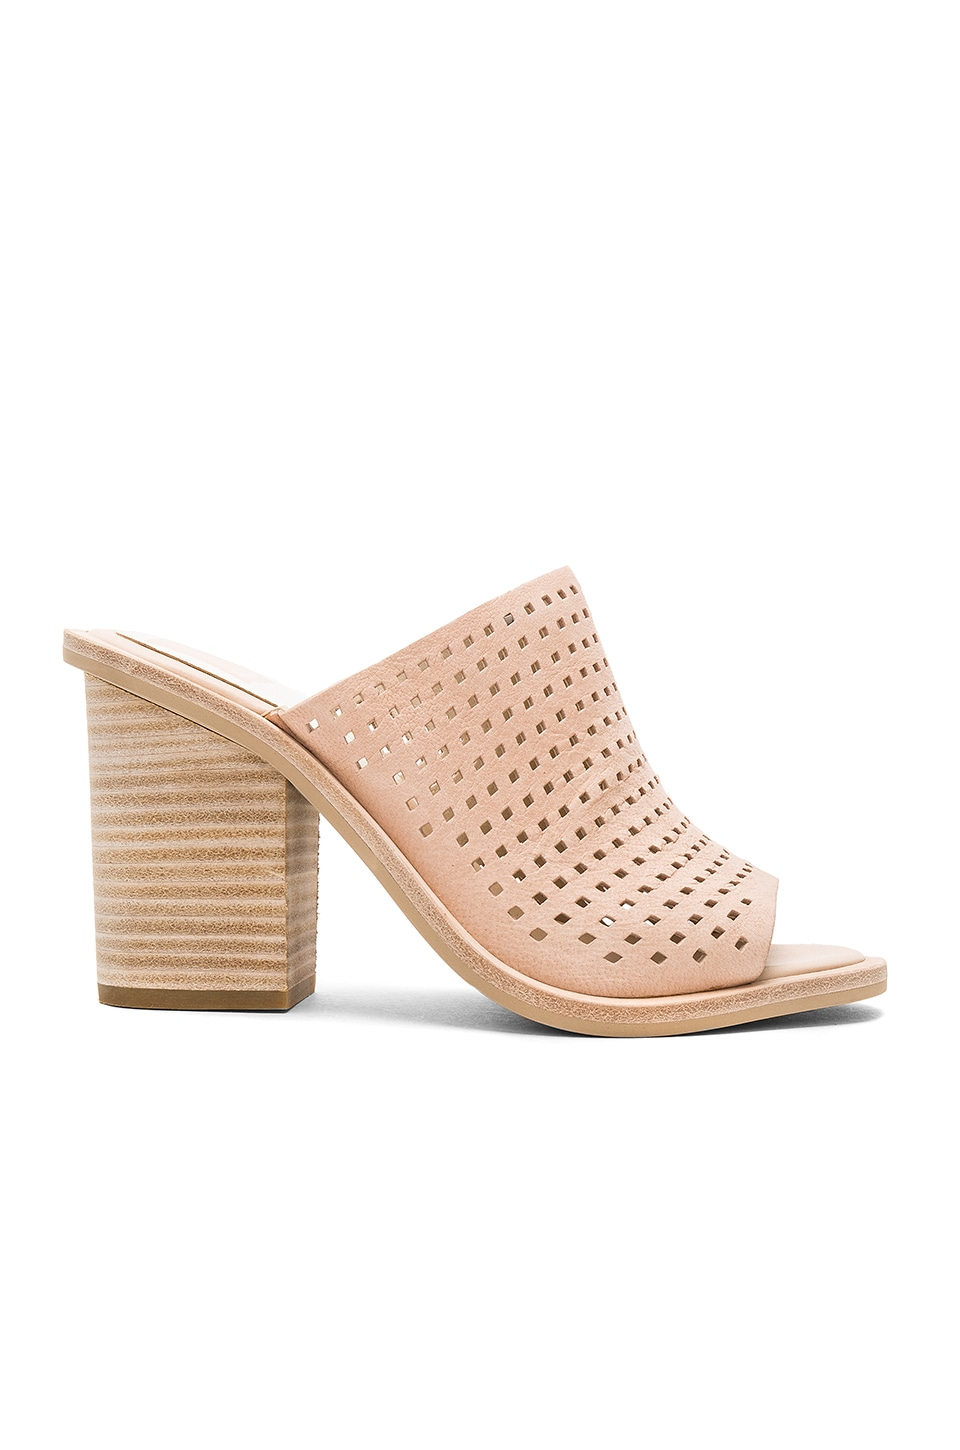 Dolce Vita Wales Mule in Blush